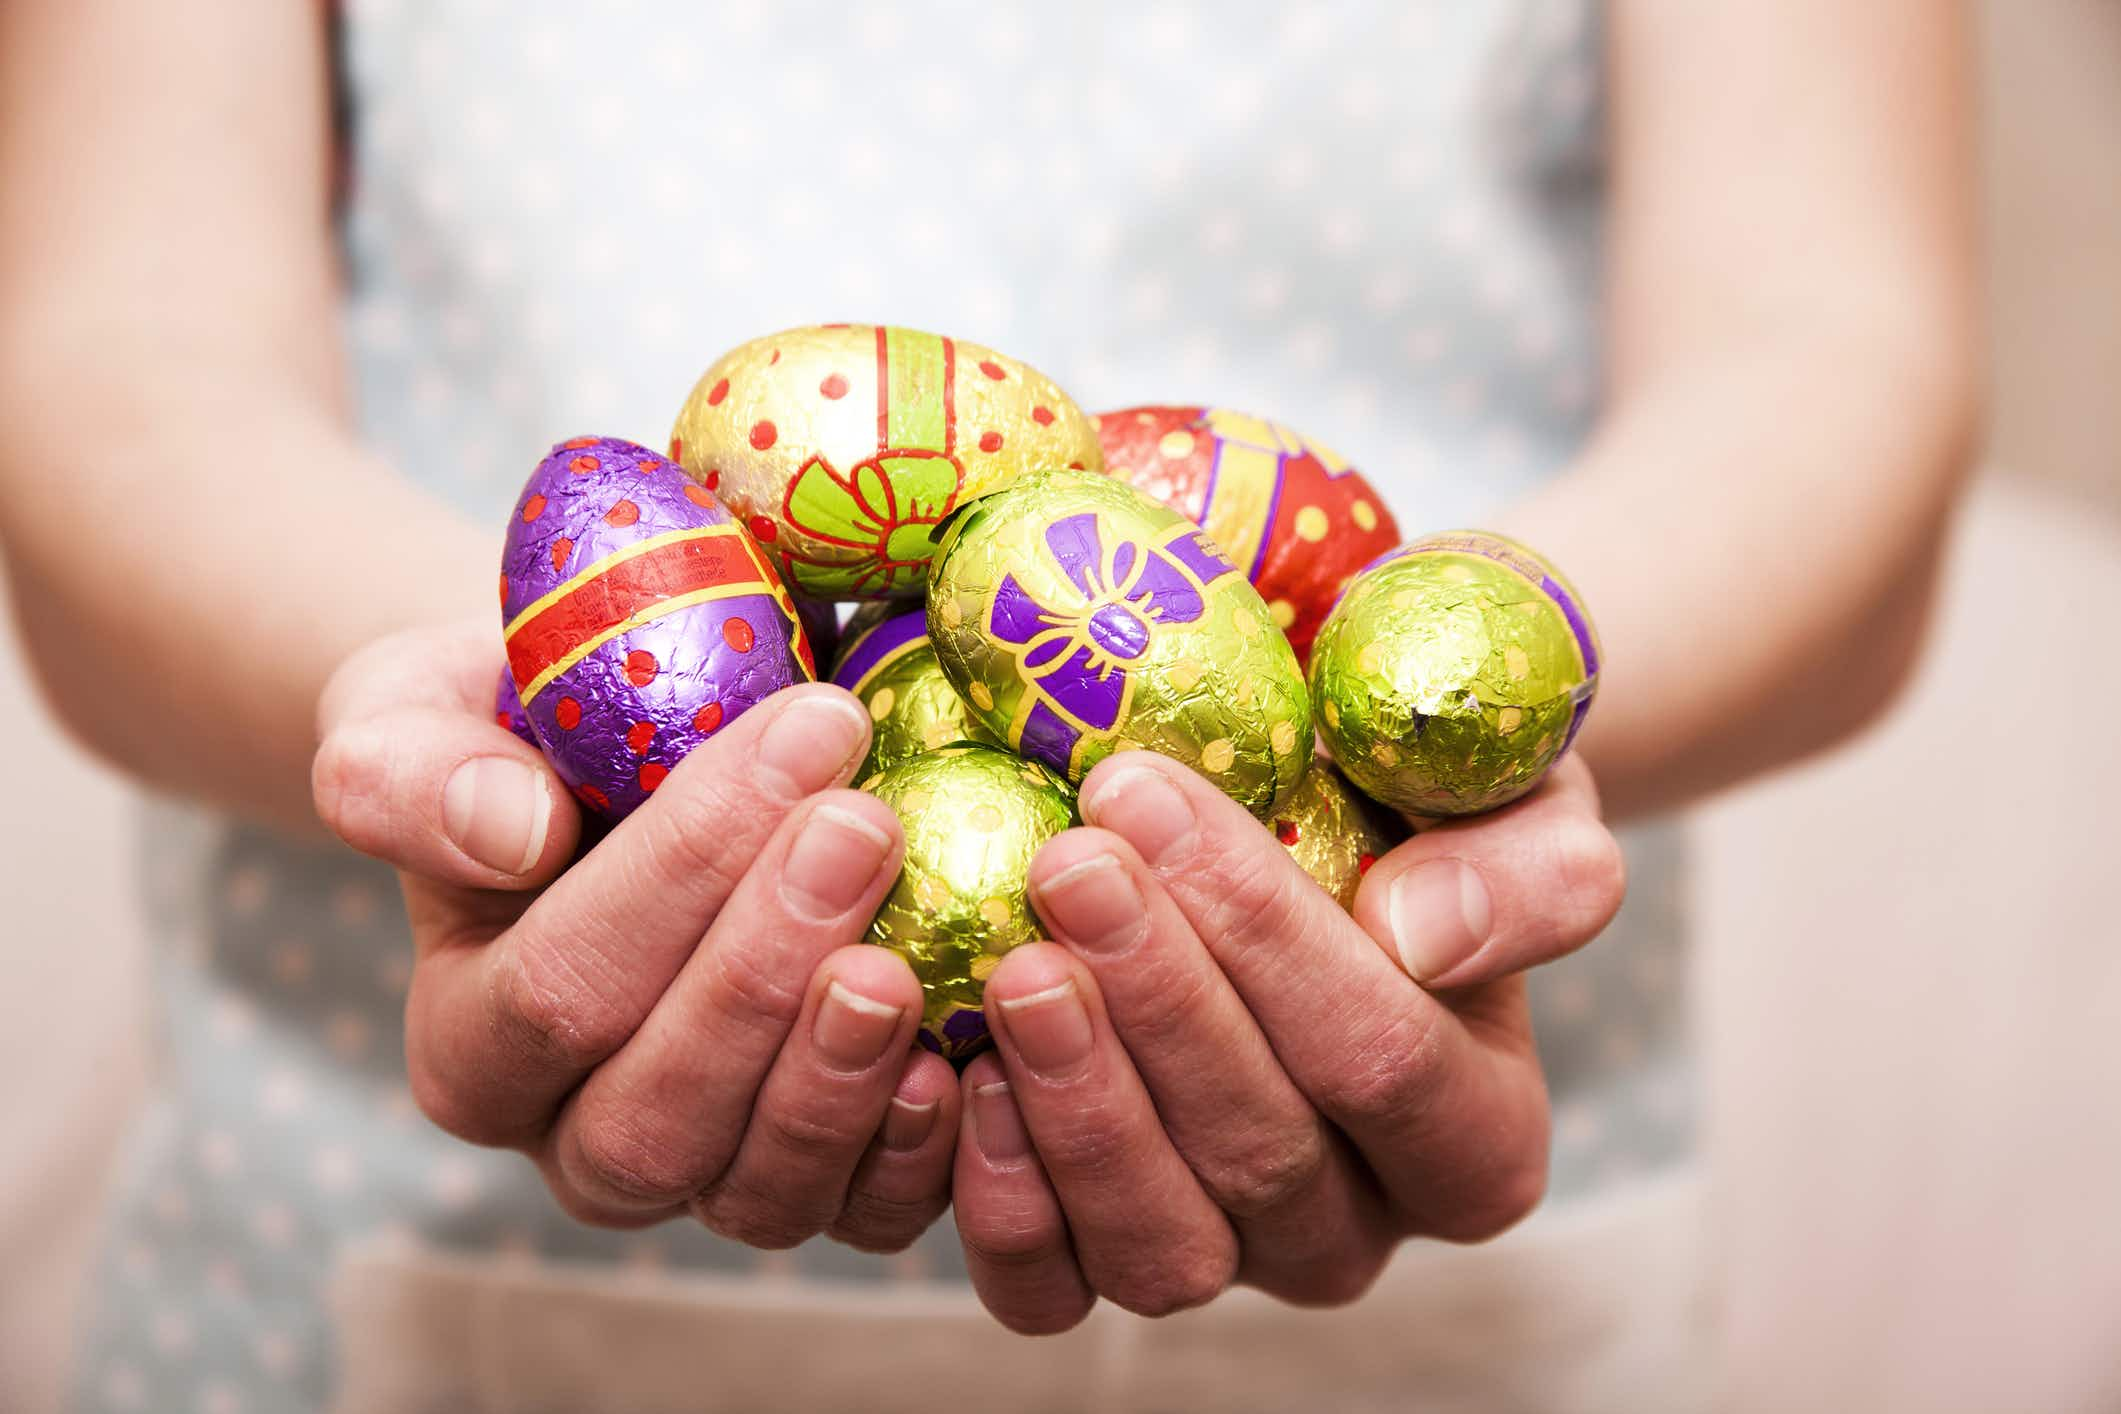 Here are some of the Easter events to get egg-cited about around the world this weekend